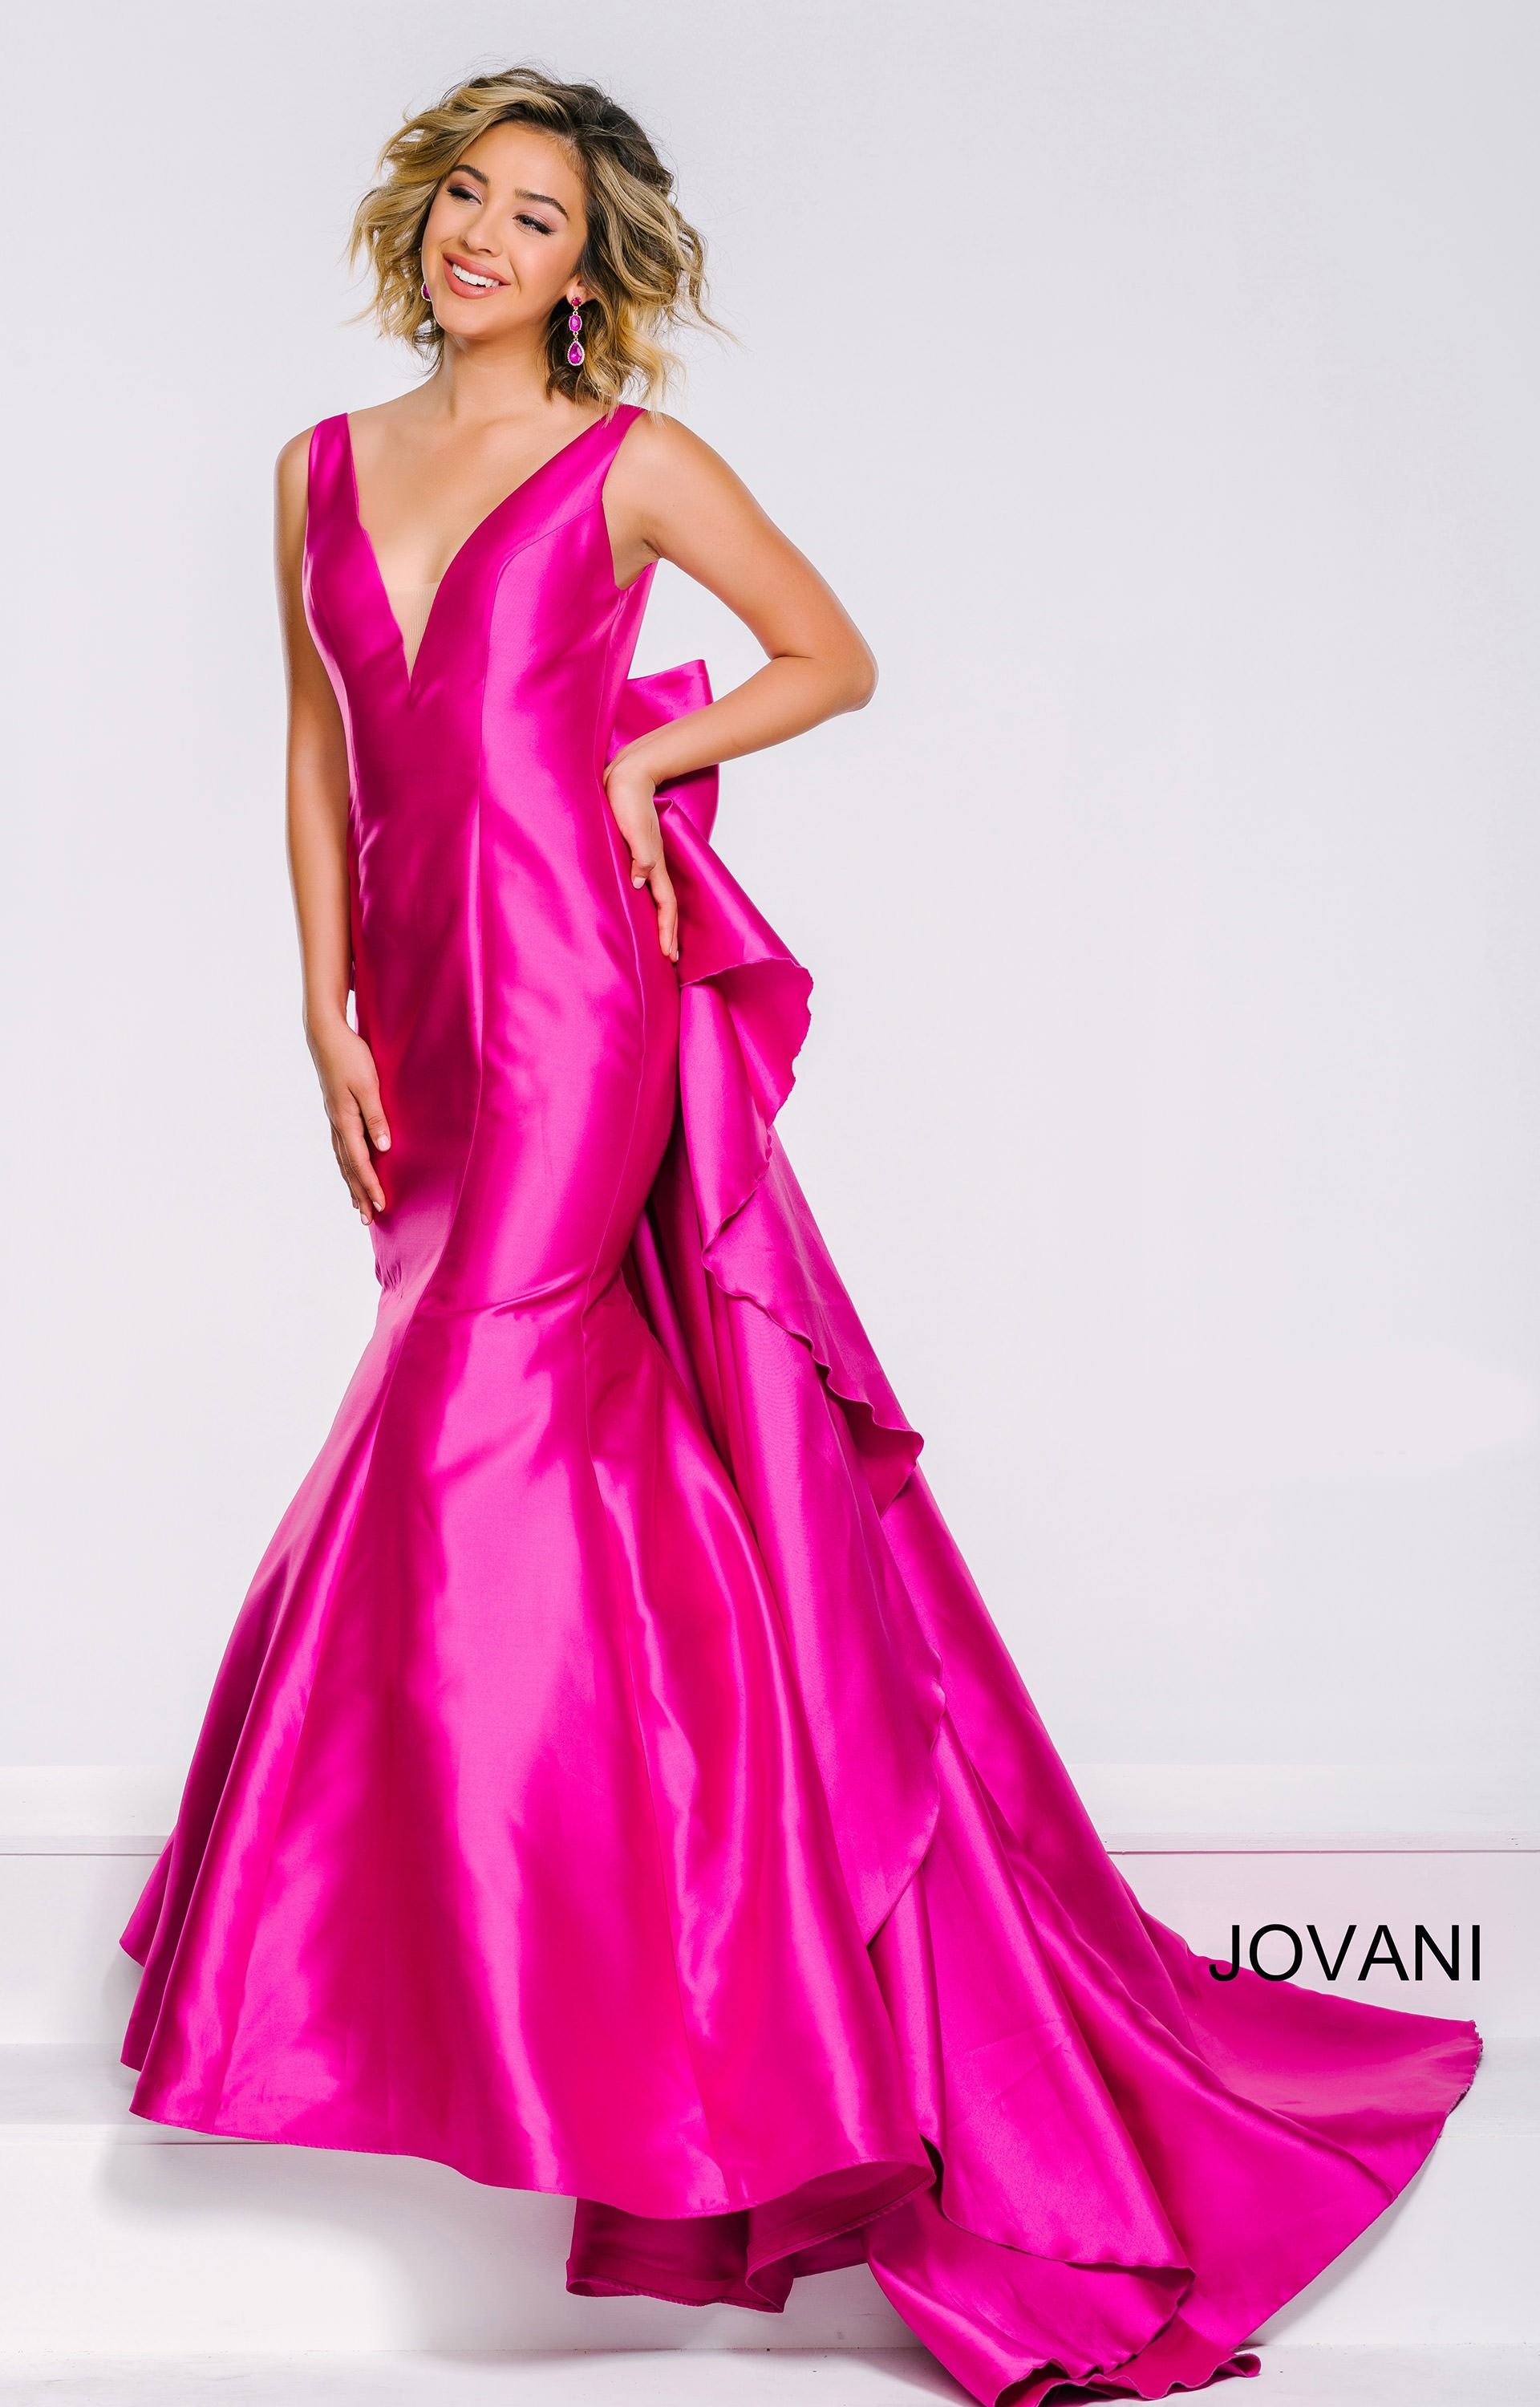 Jovani 41644 All Wrapped With A Bow Tiffany Satin